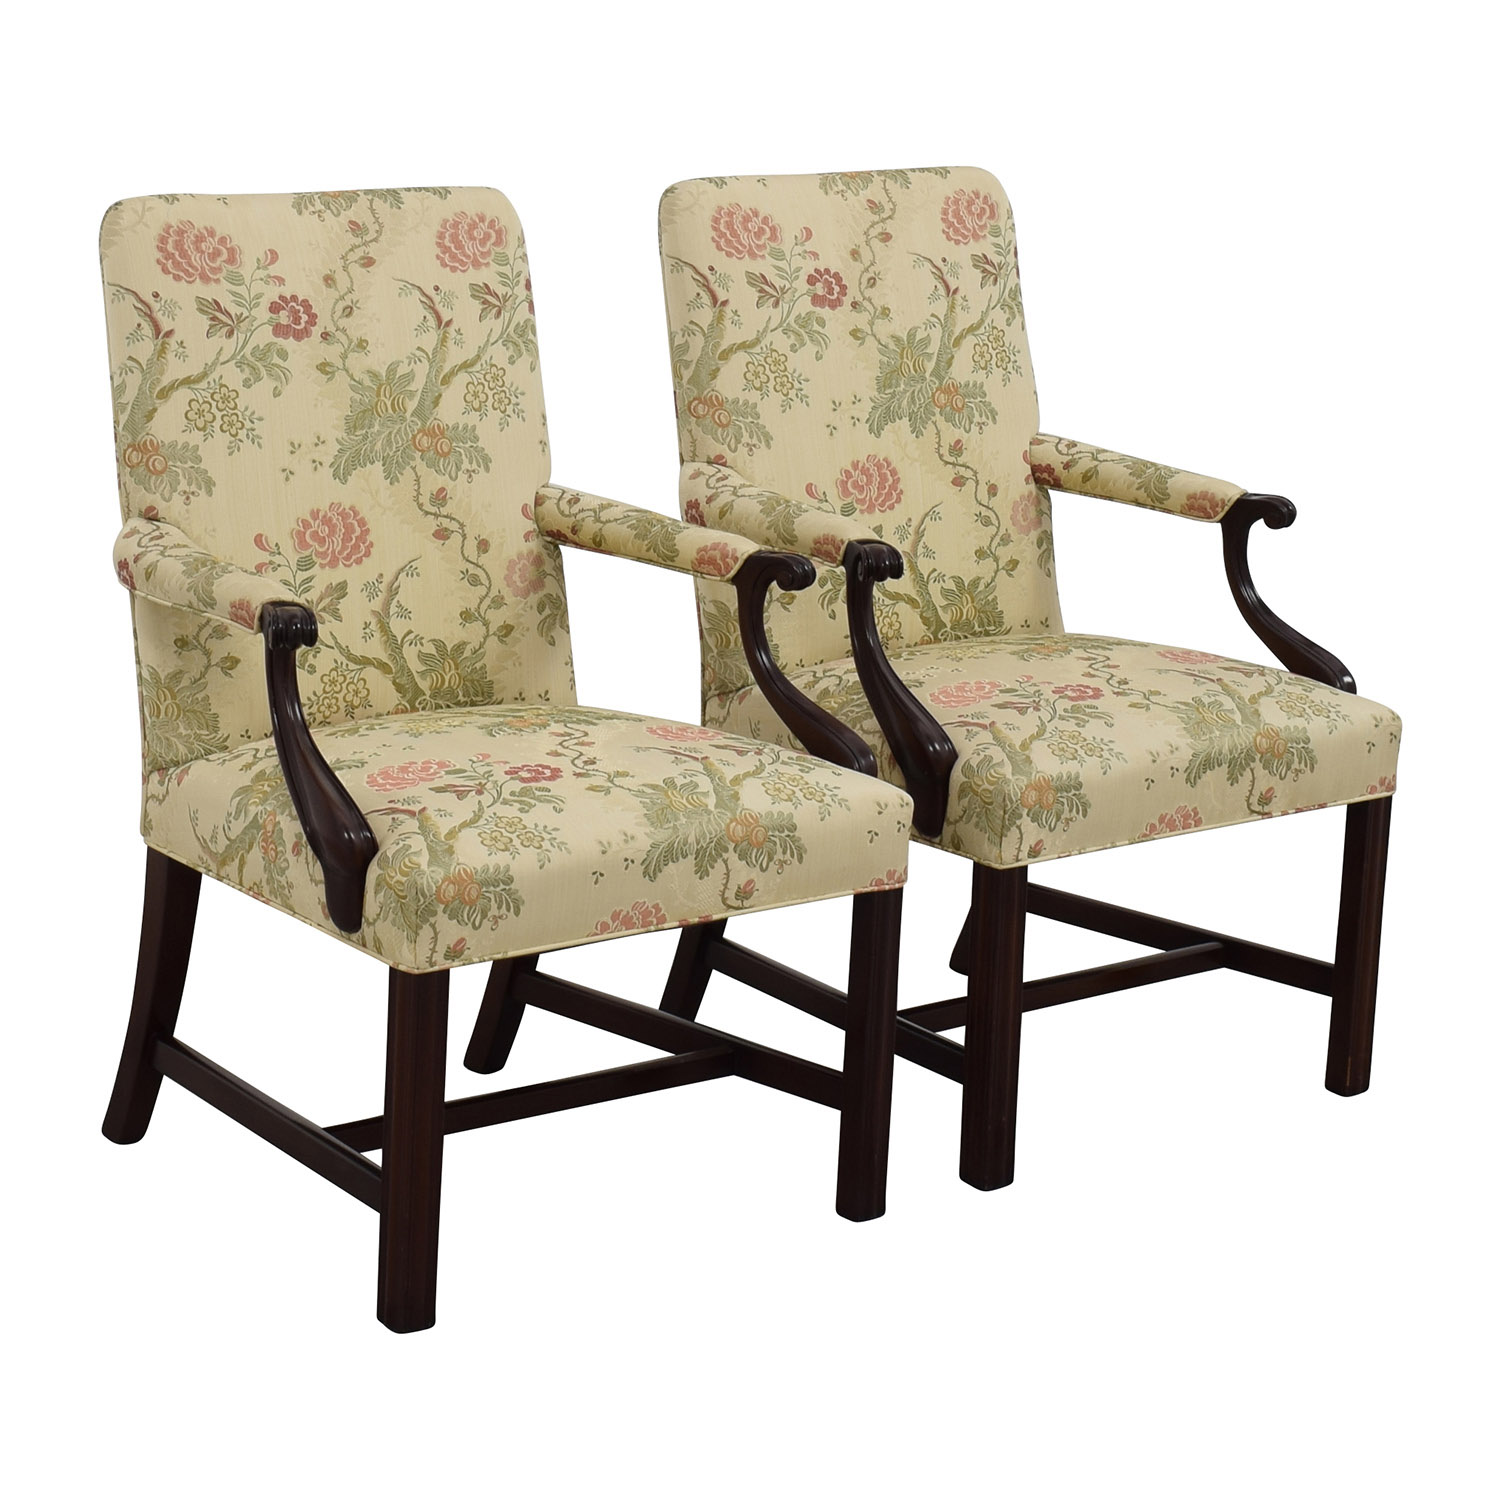 90 off traditional upholstered arm chair set of two for Upholstered accent chairs cheap